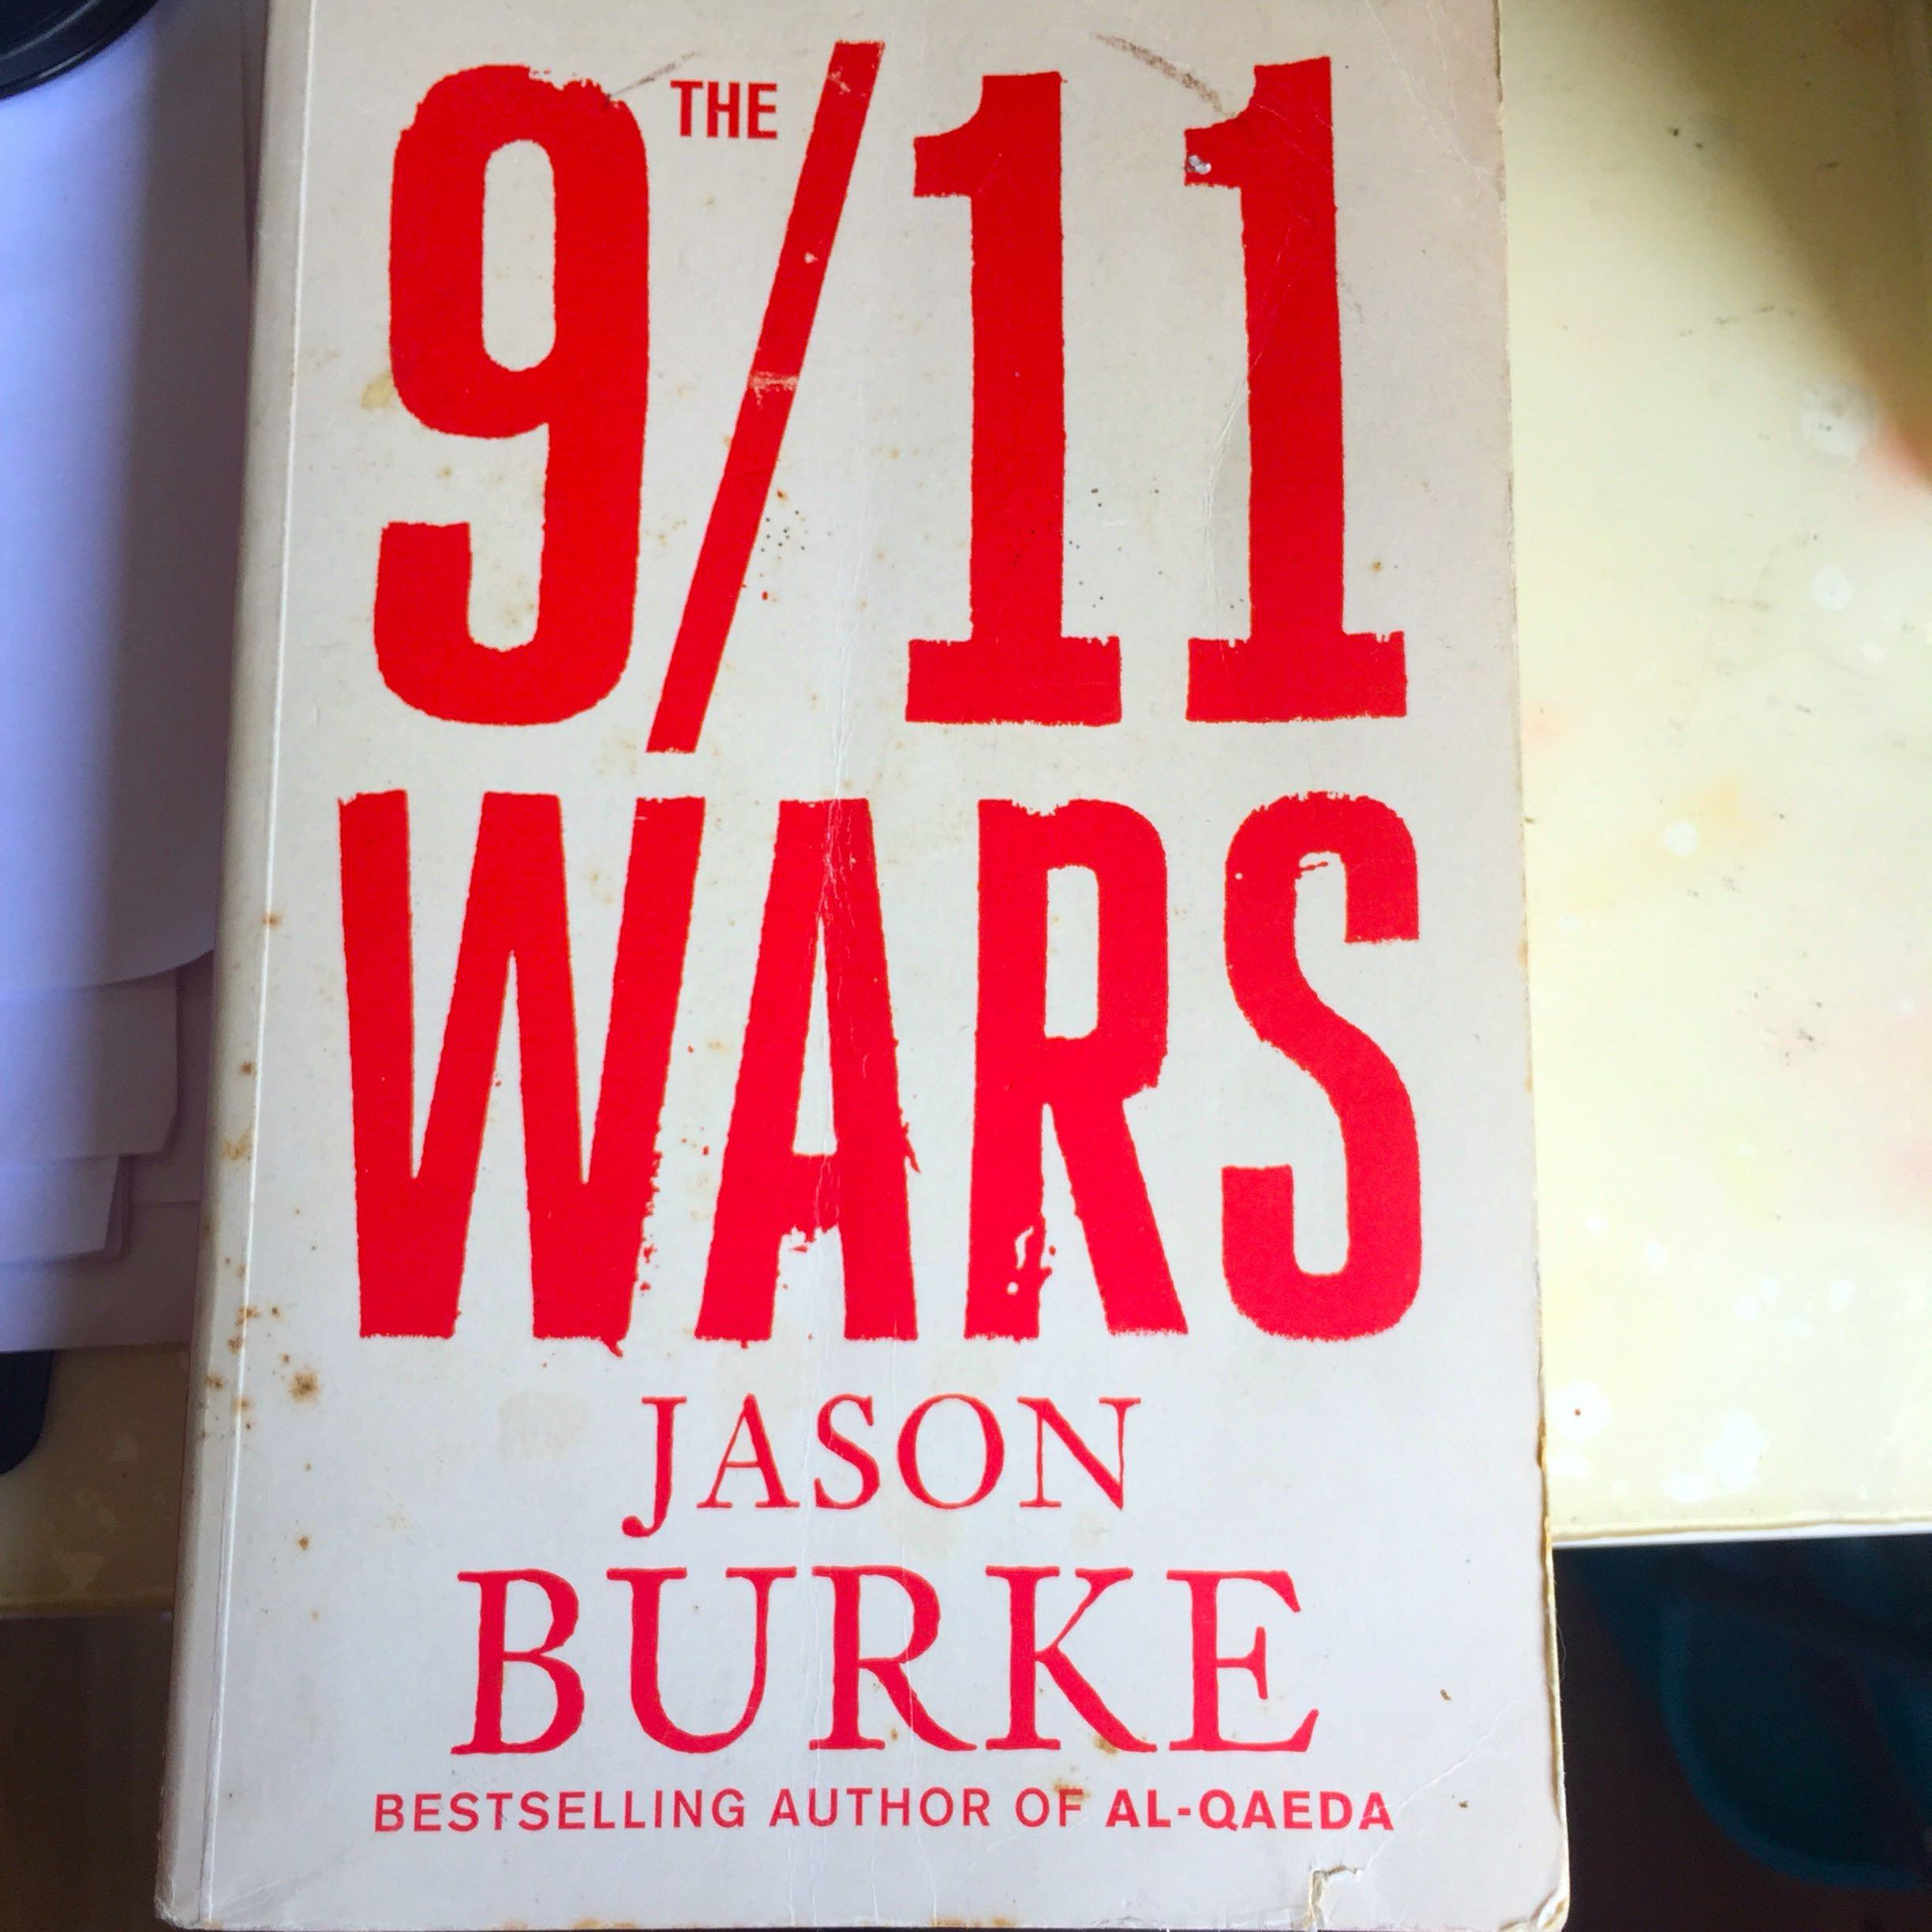 9/11 wars by Jason Burke, Books & Stationery, Non-Fiction on